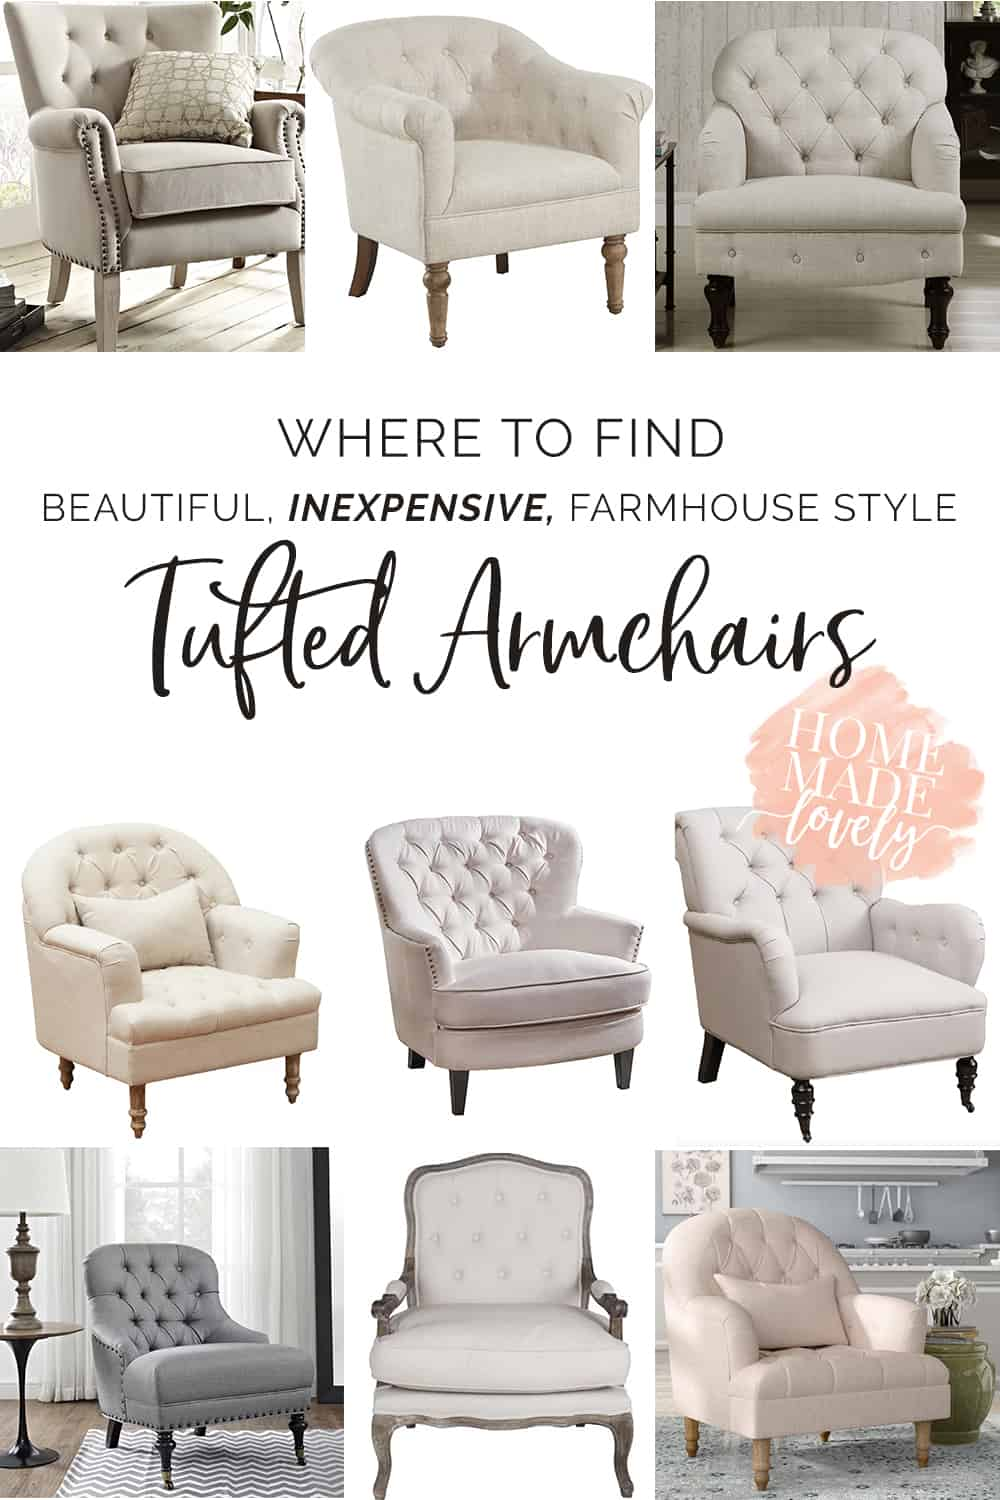 Tufted Armchairs pin